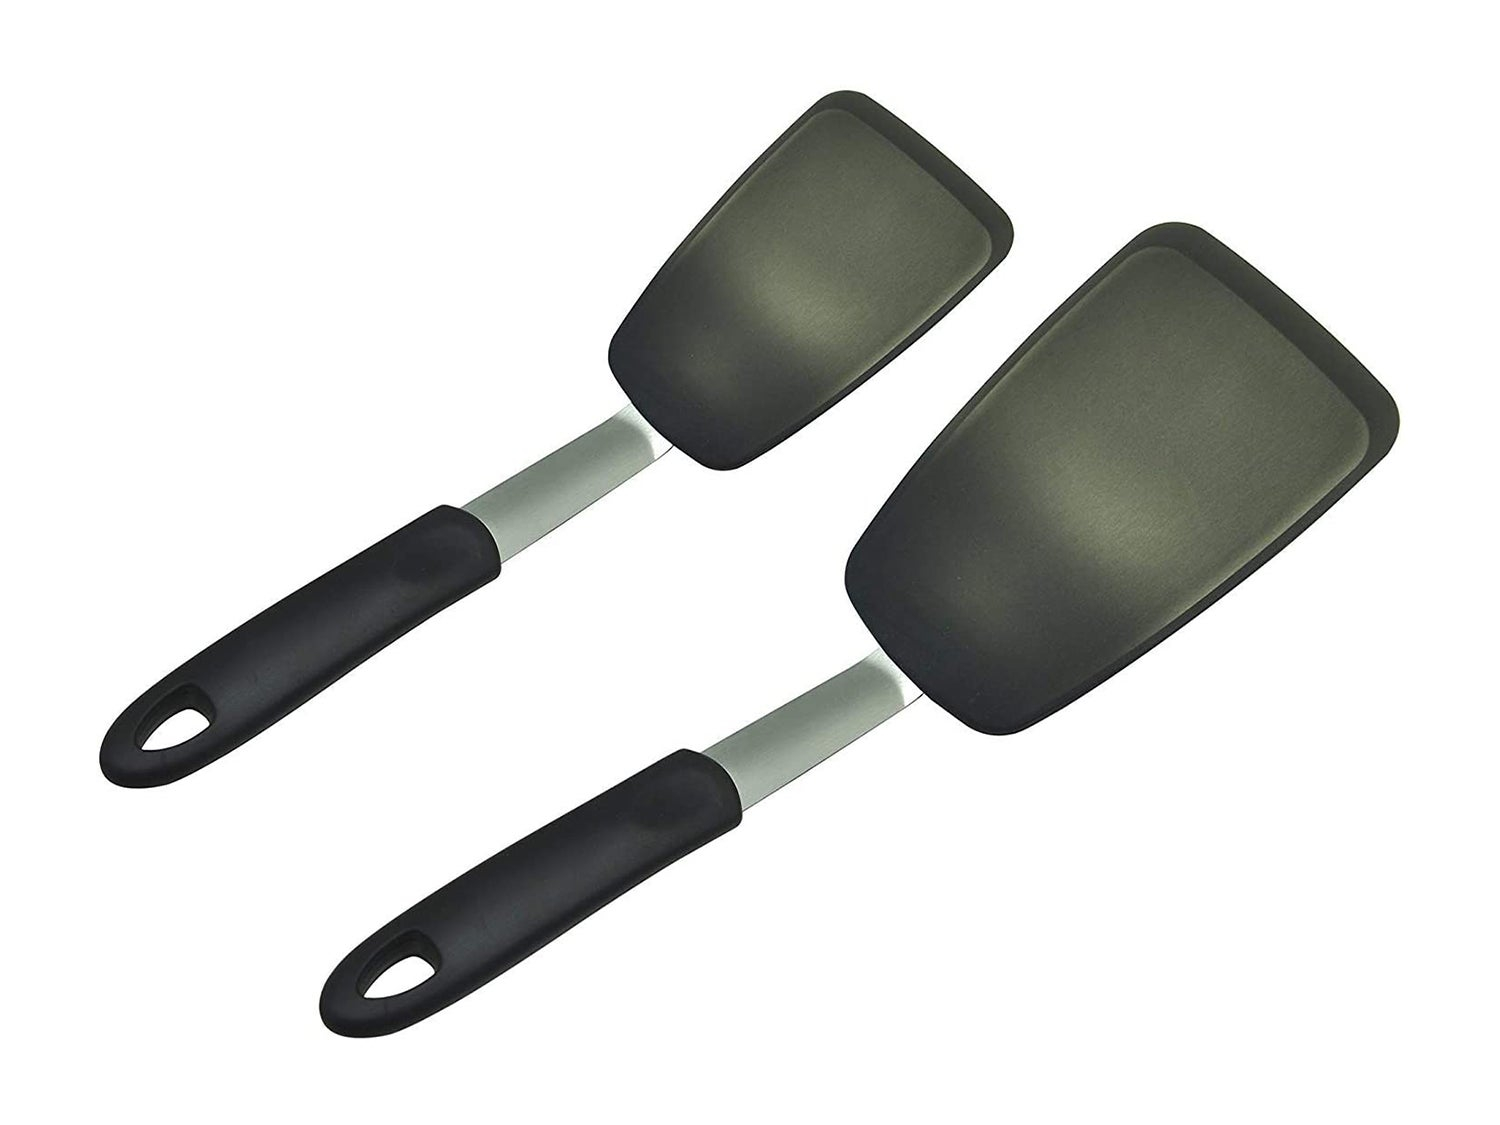 Unicook 2 Pack Flexible Silicone Spatula, Turner, 600F Heat Resistant, Ideal for Flipping Eggs, Burgers, Crepes and More, Black